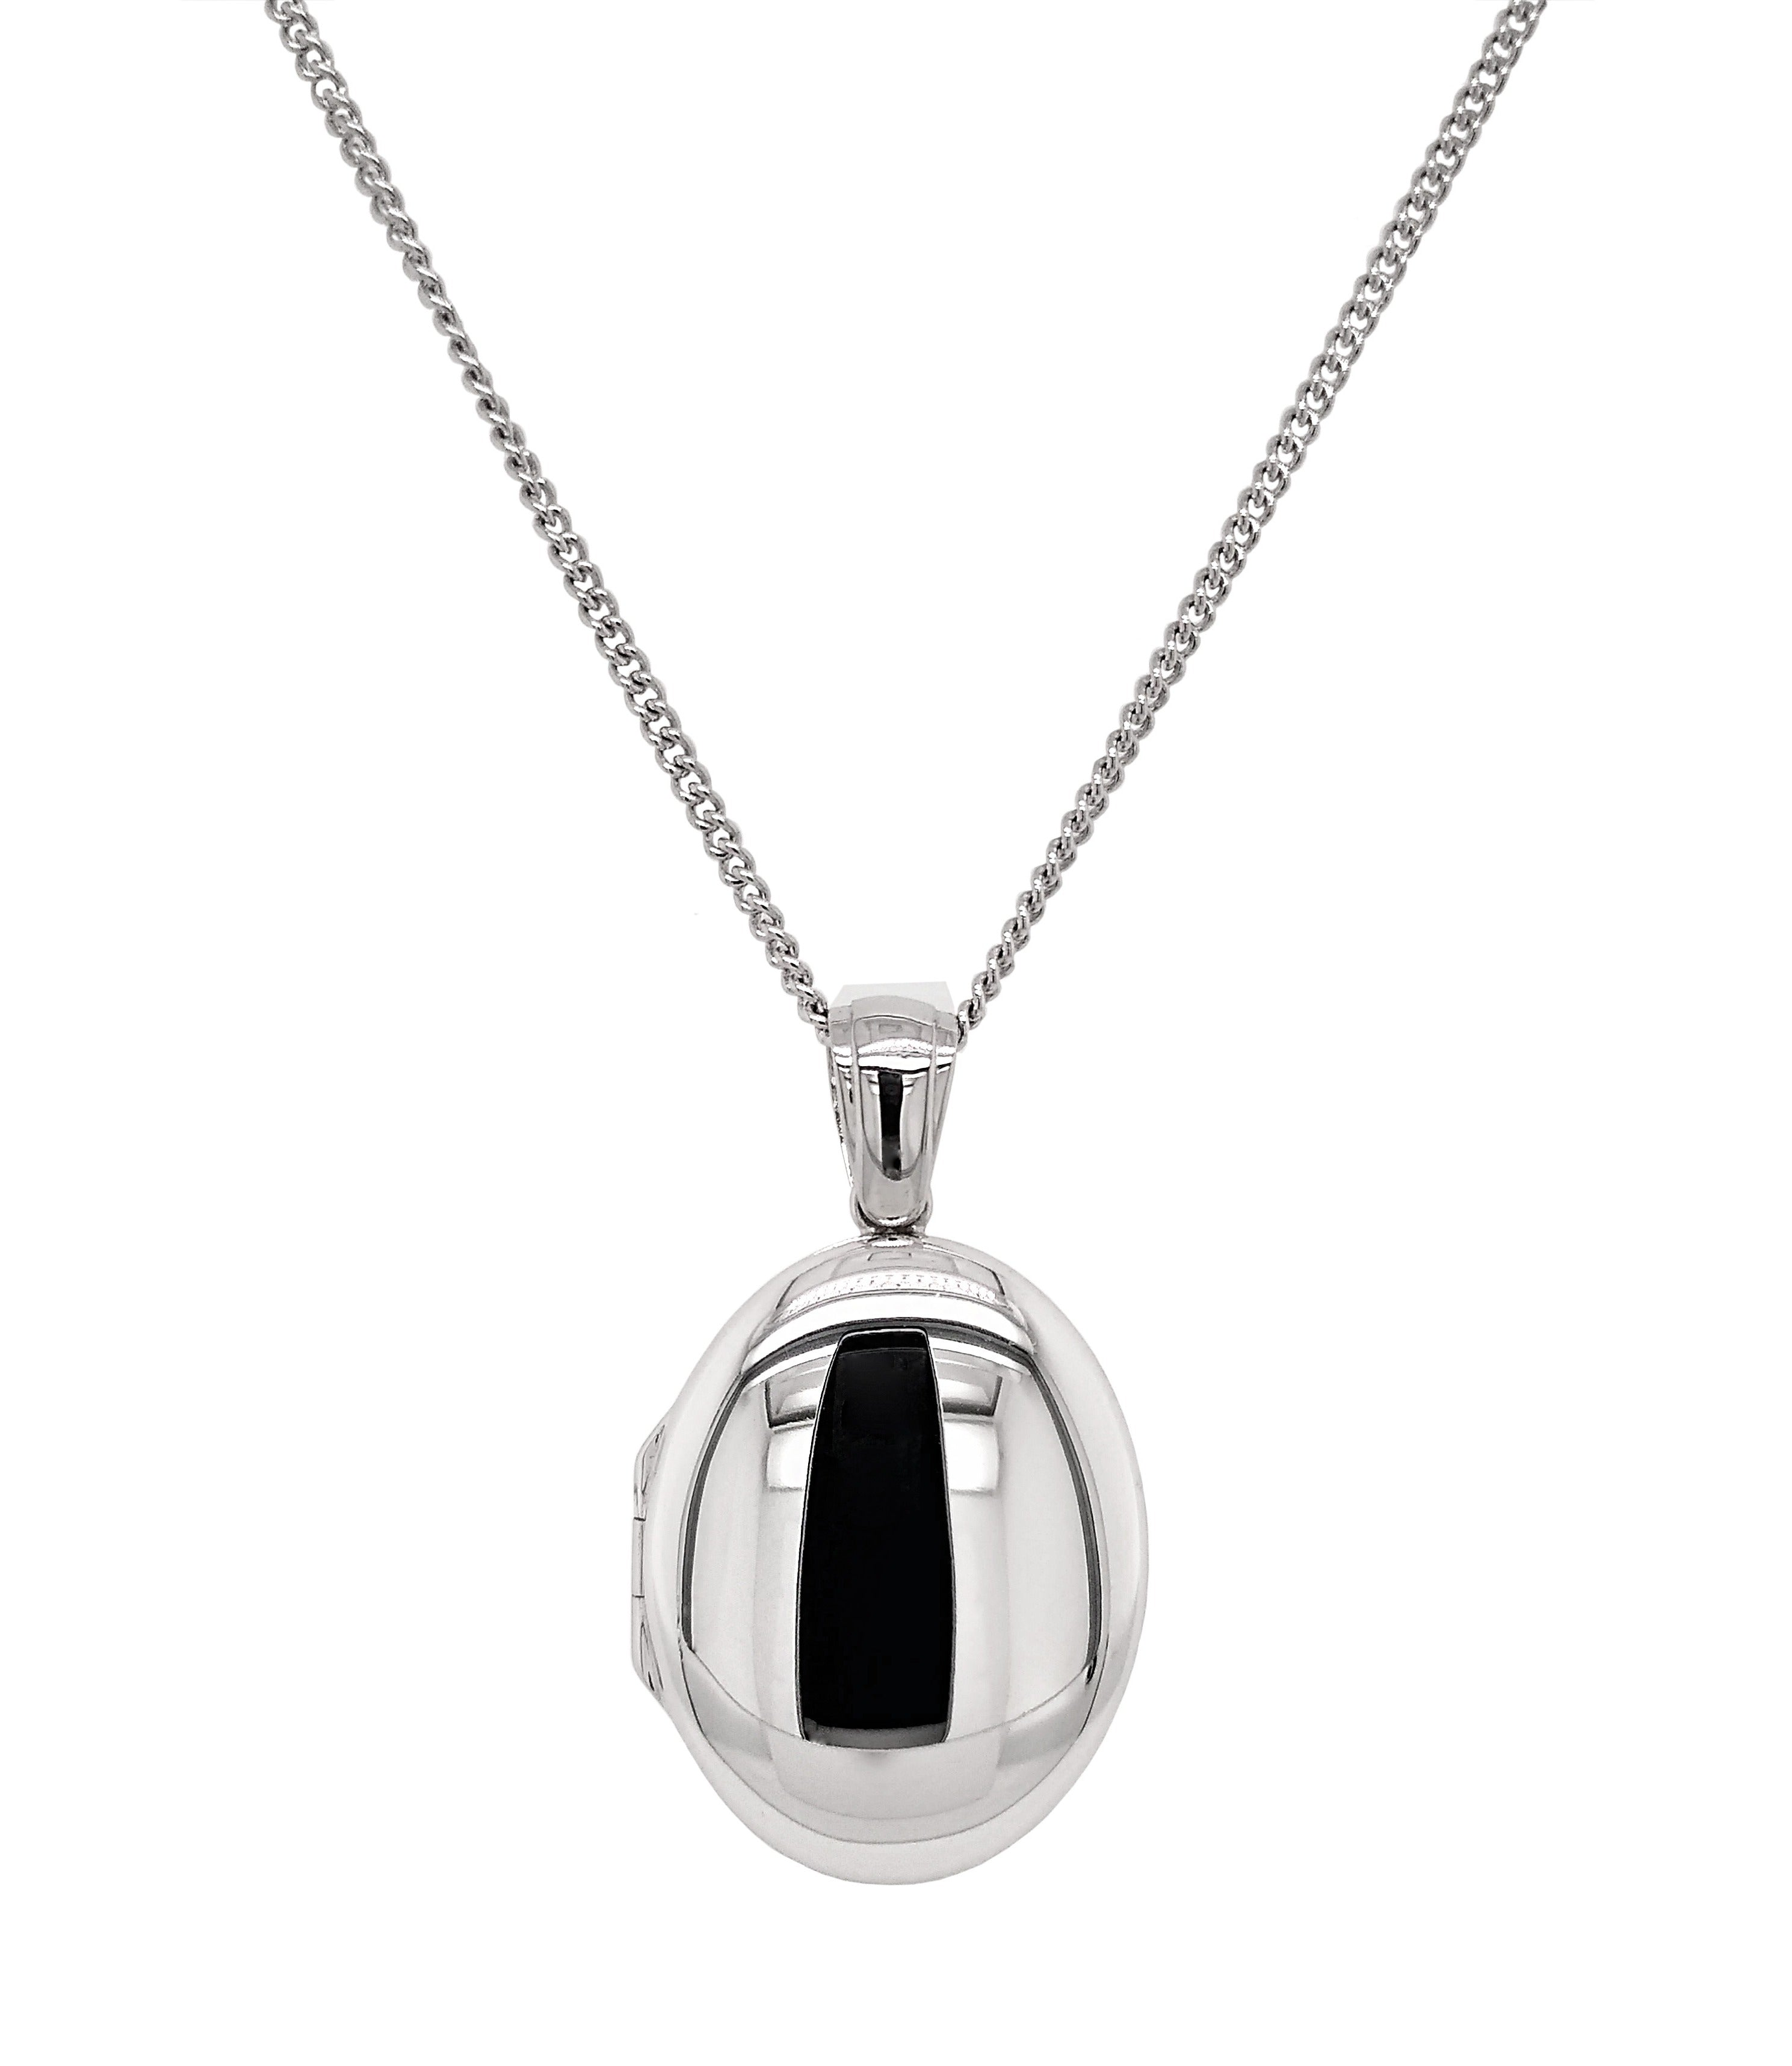 9ct White Gold Medium Oval Locket & Chain